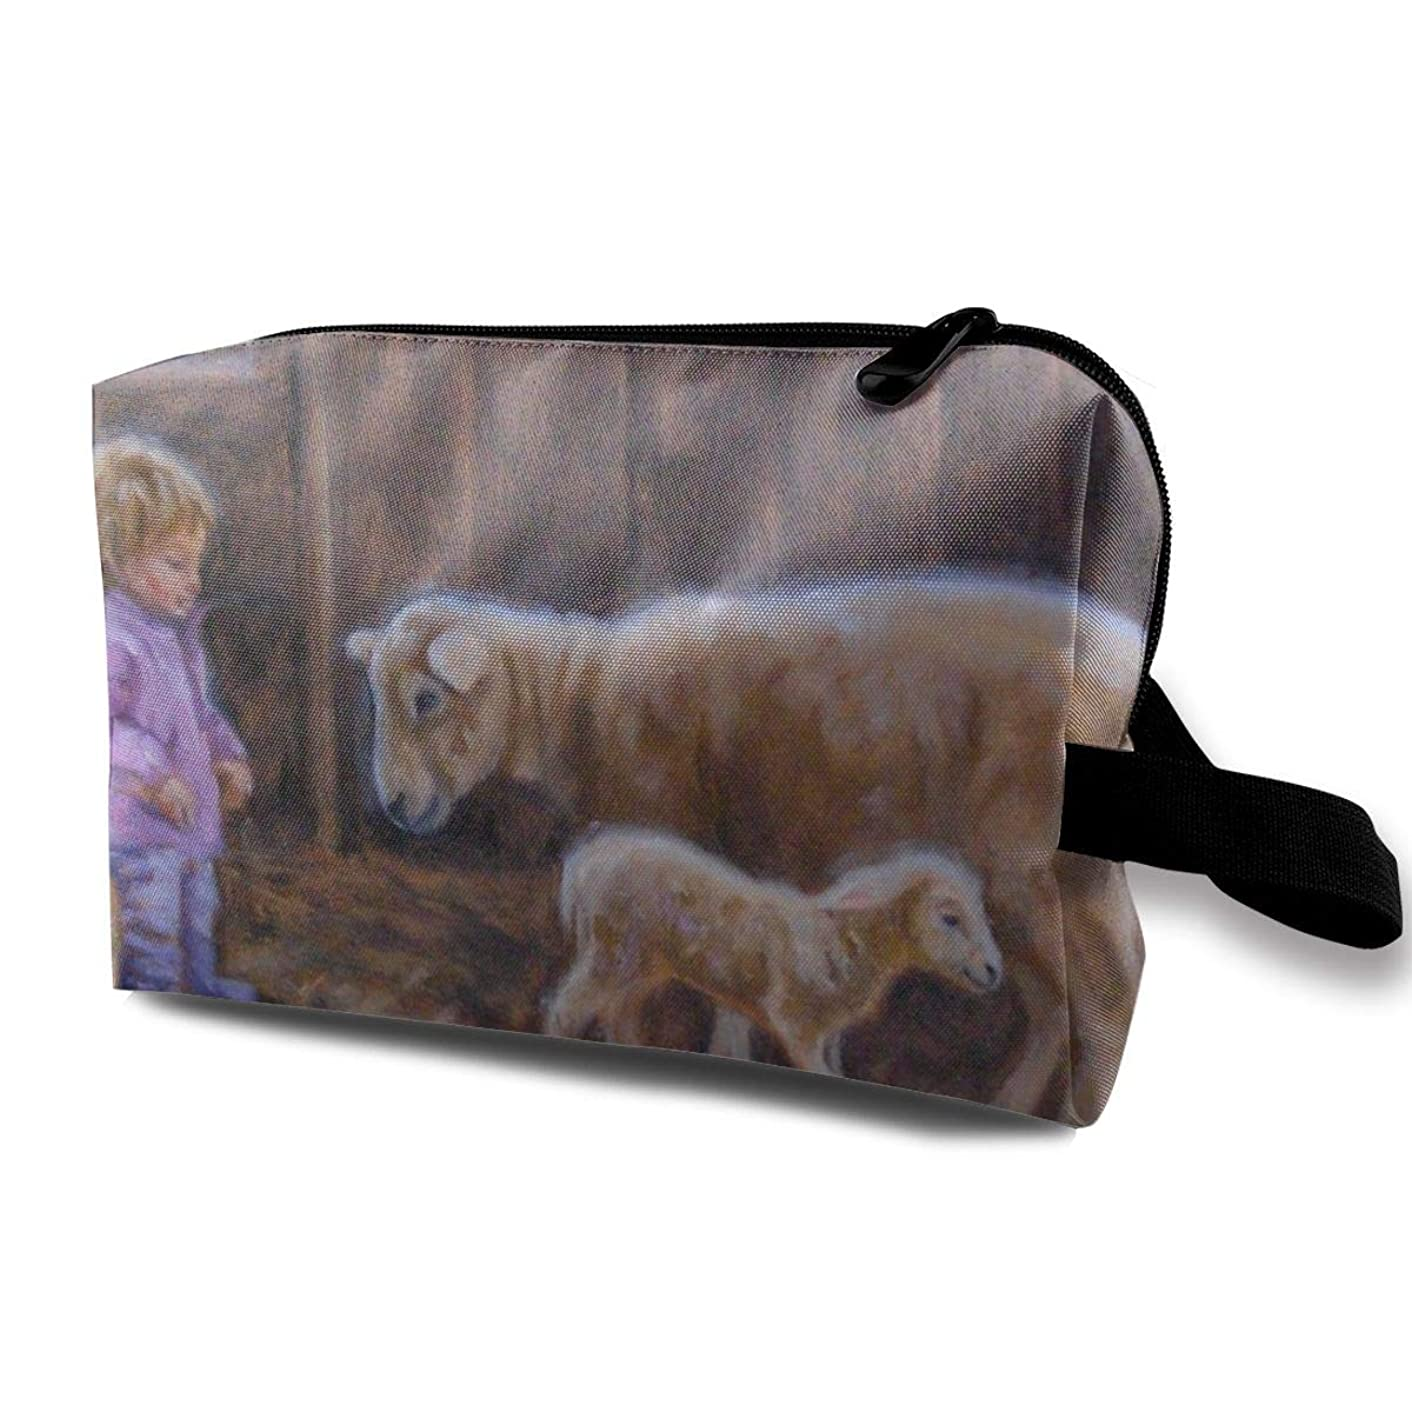 Sheep Painting Cosmetic Bags Makeup Organizer Bag Pouch Zipper Purse Handbag Clutch Bag